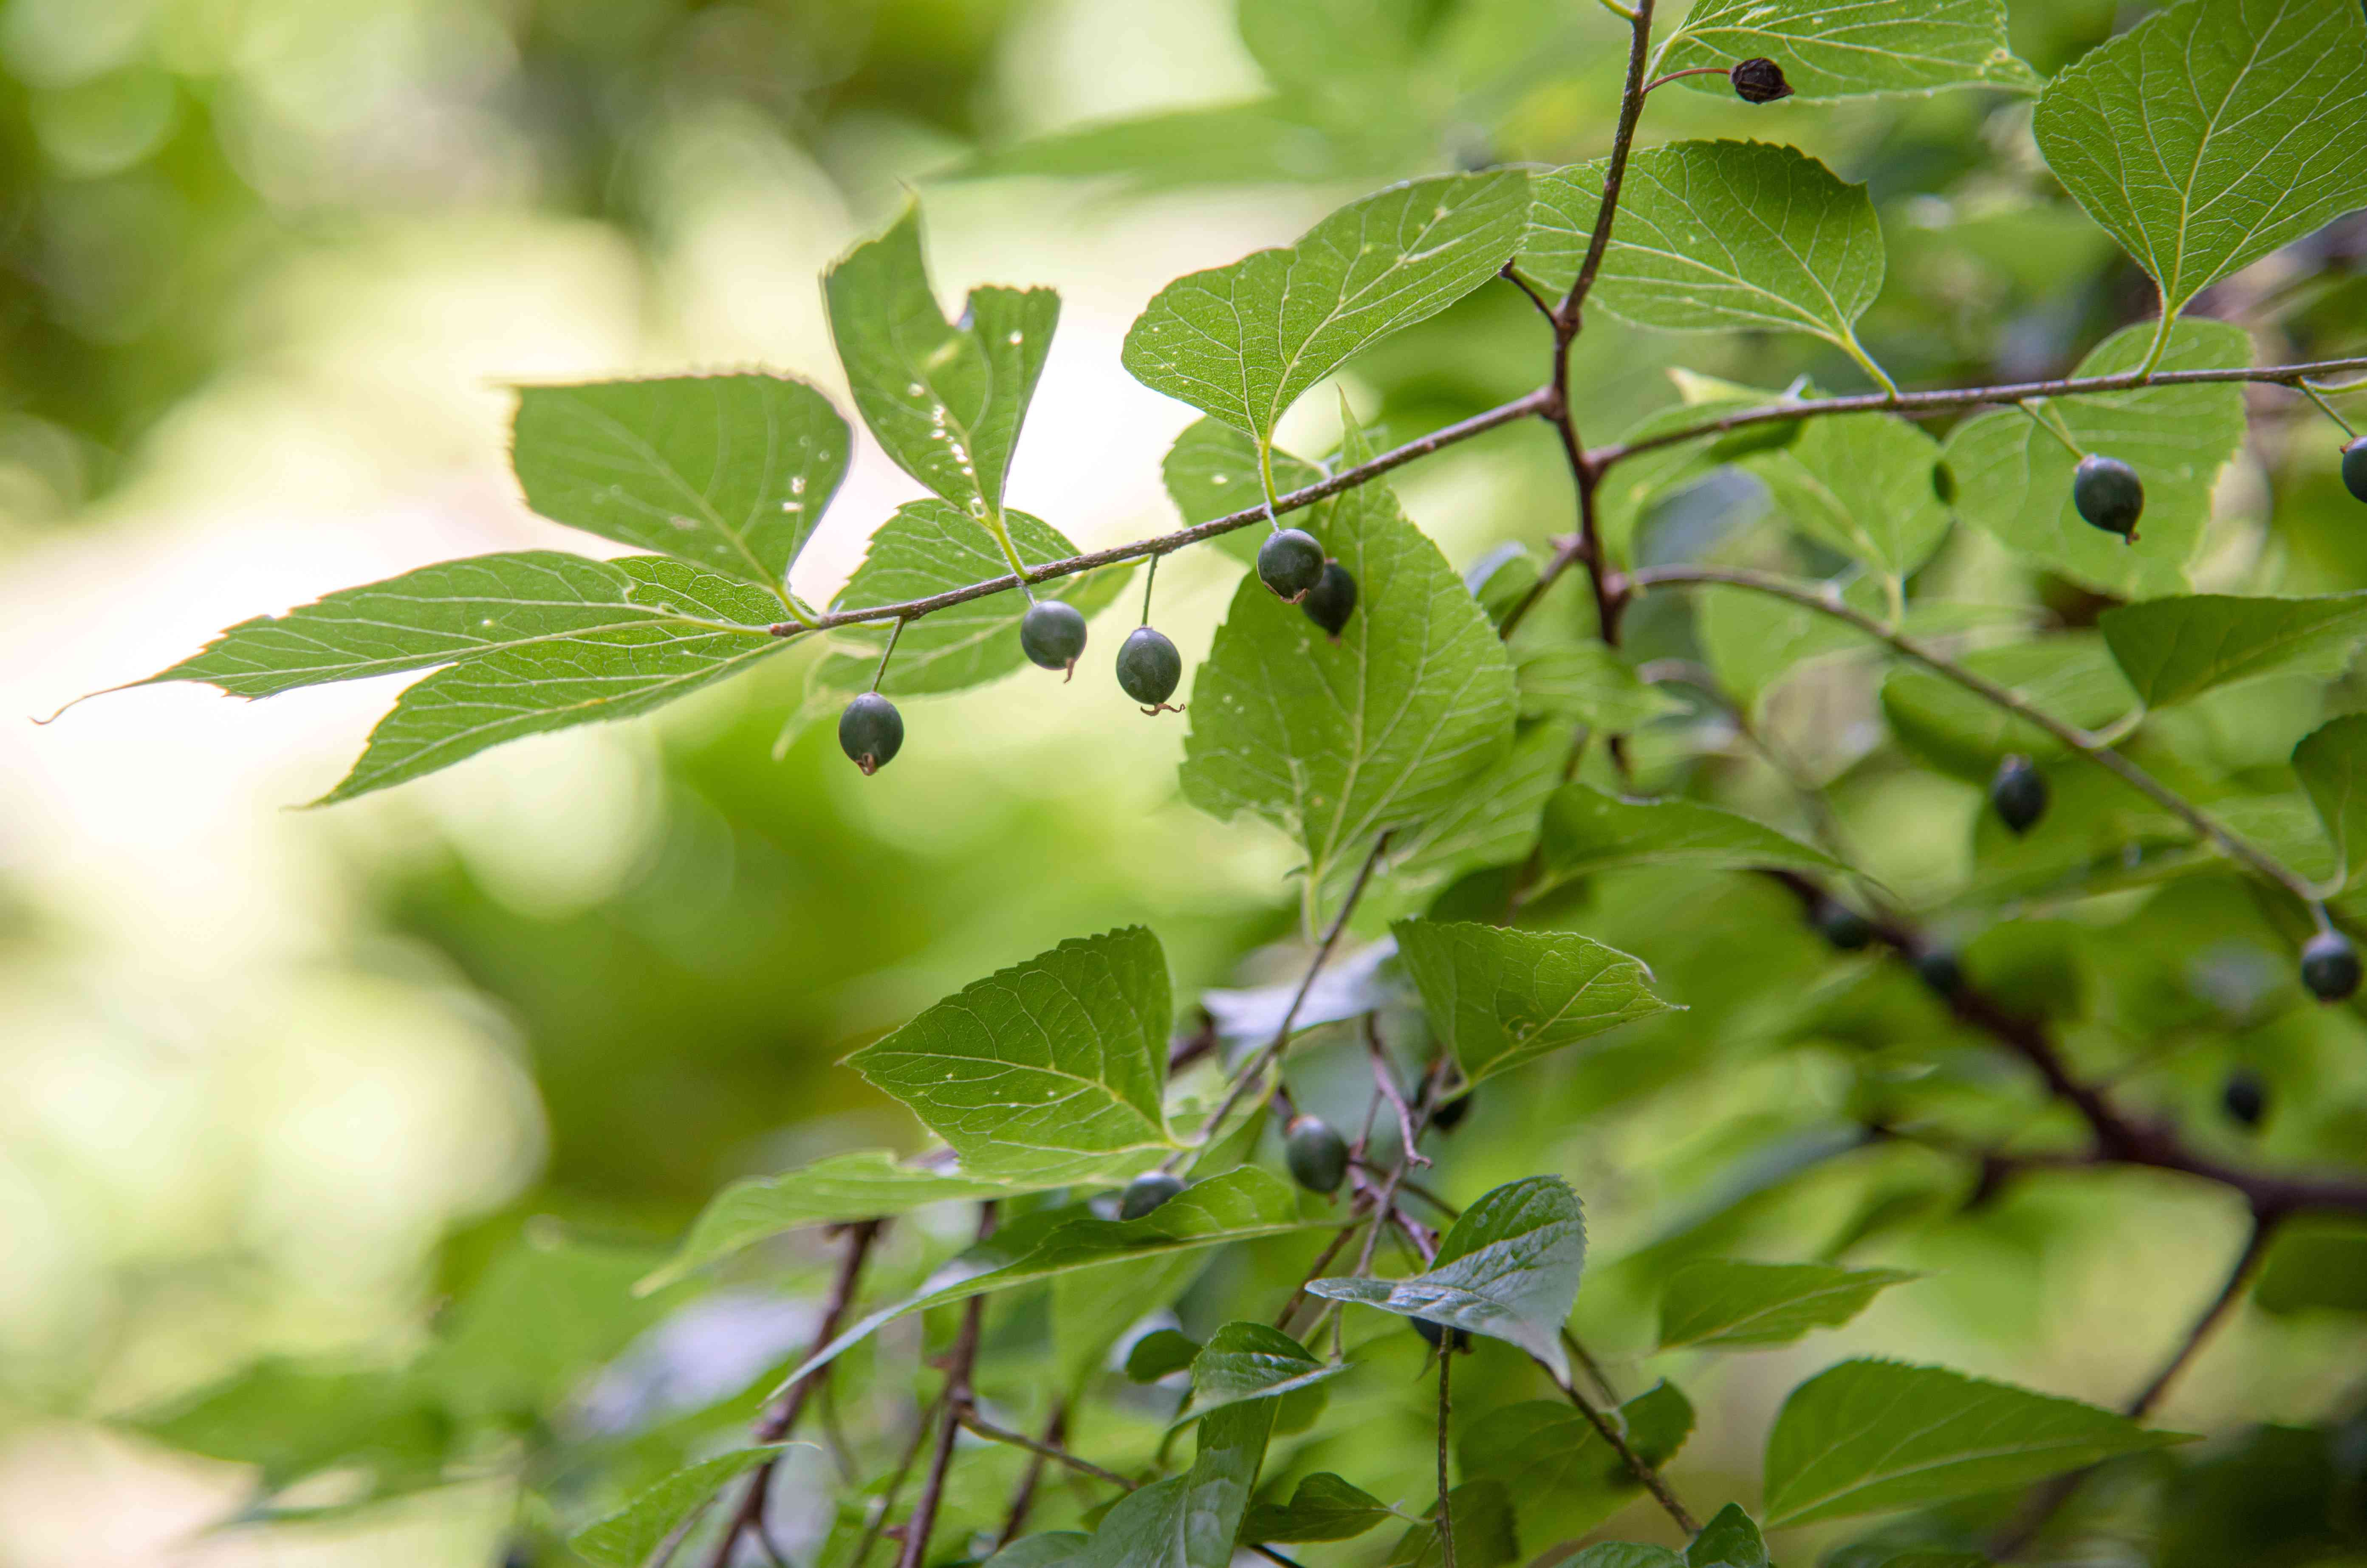 Hackberry tree branch with serrated leaves and small drupe fruits hanging